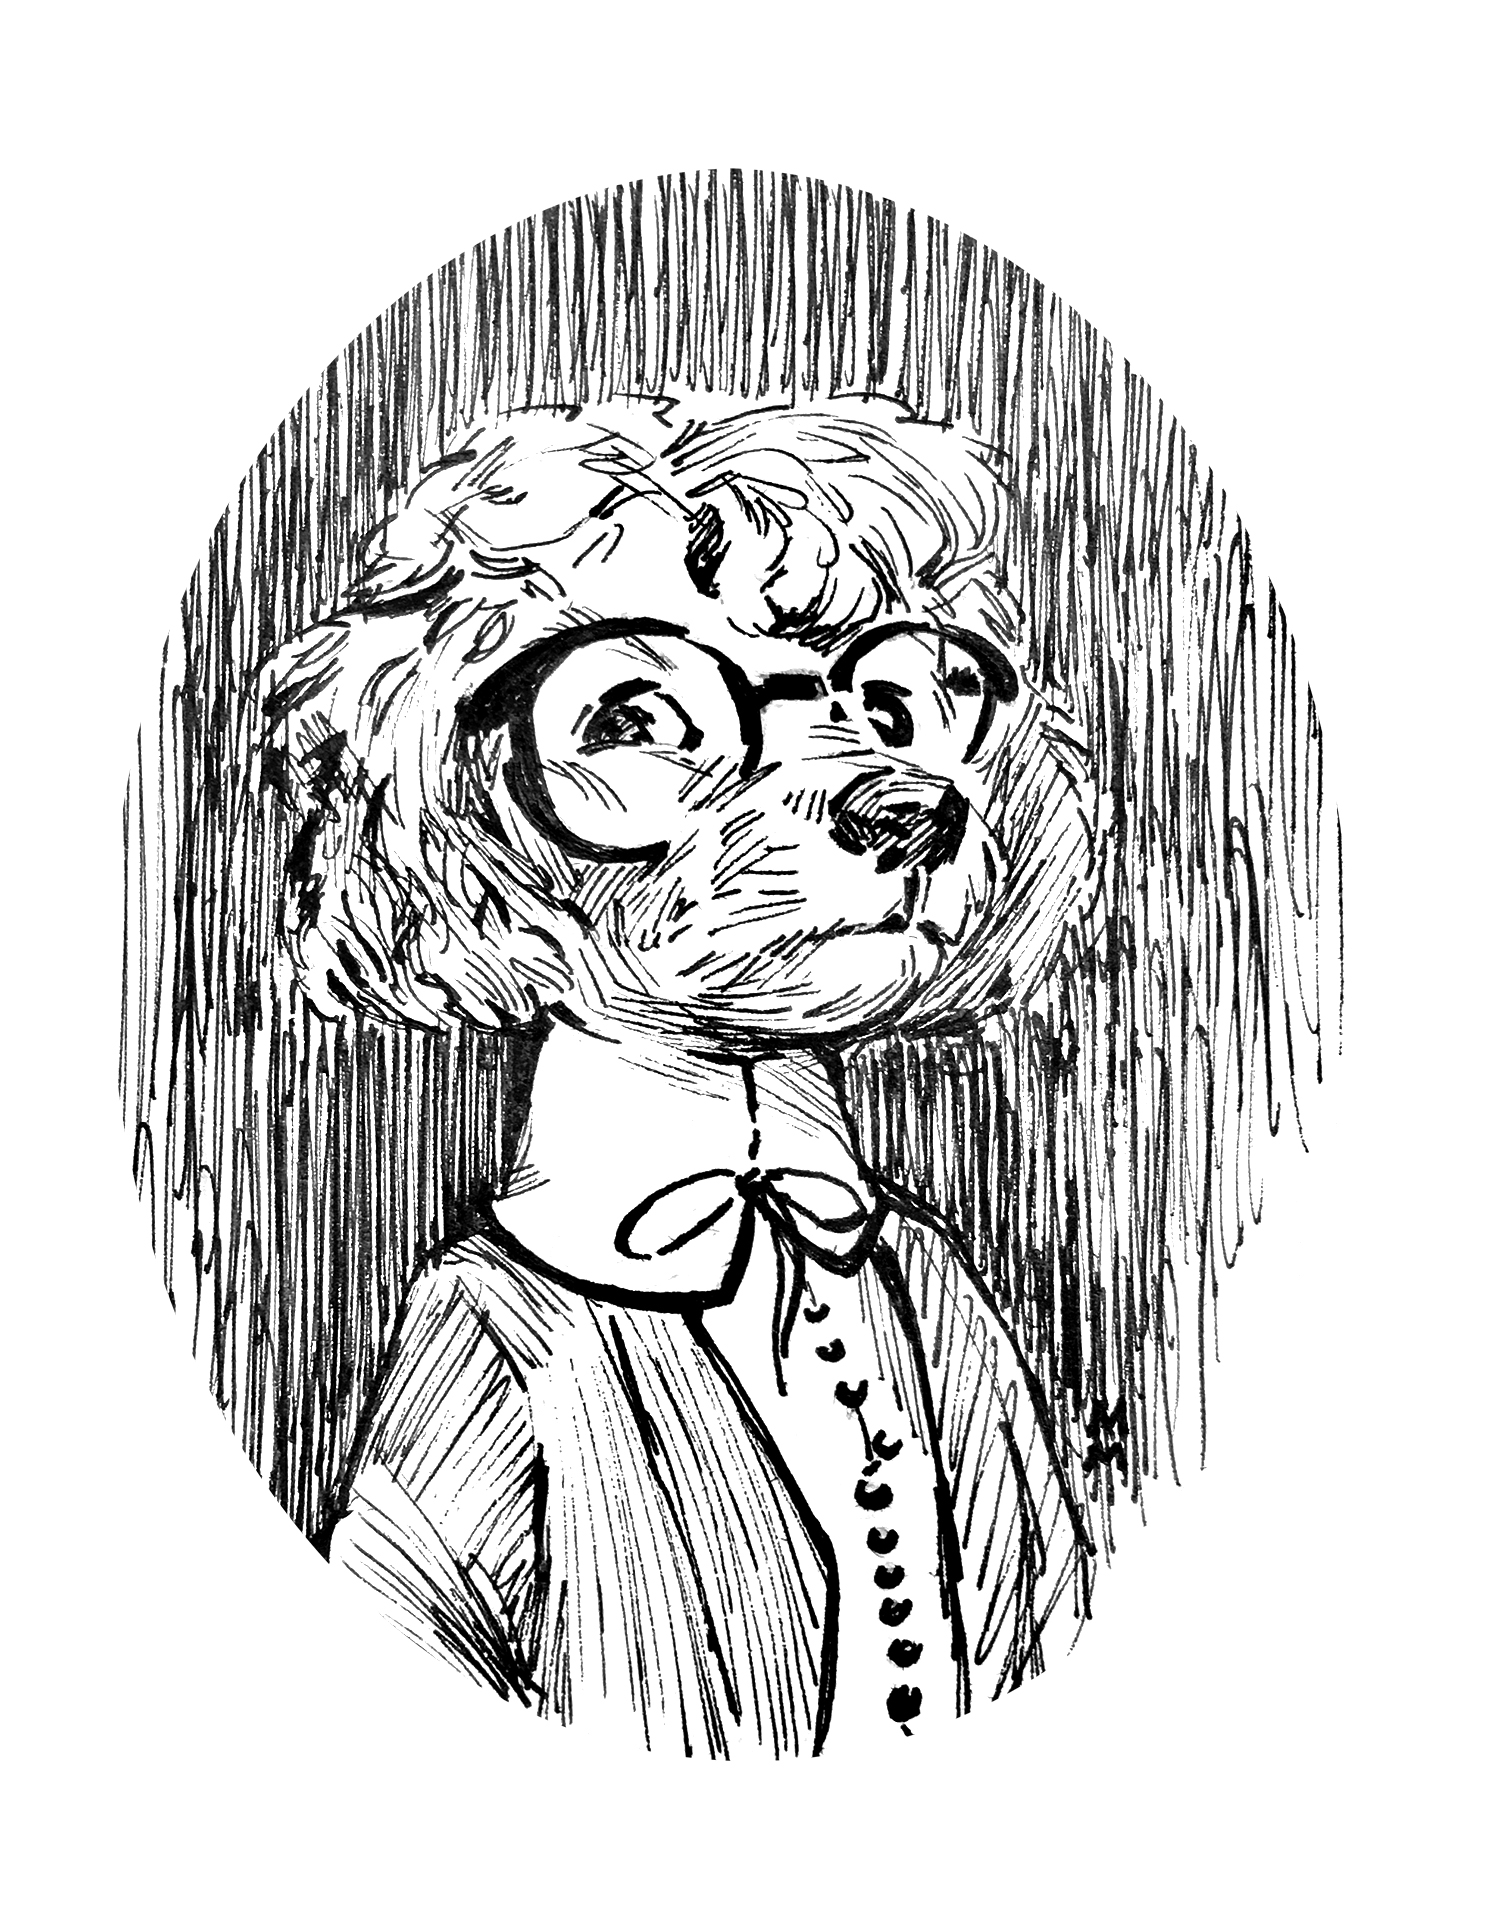 Snooty Poodle, Personal Piece